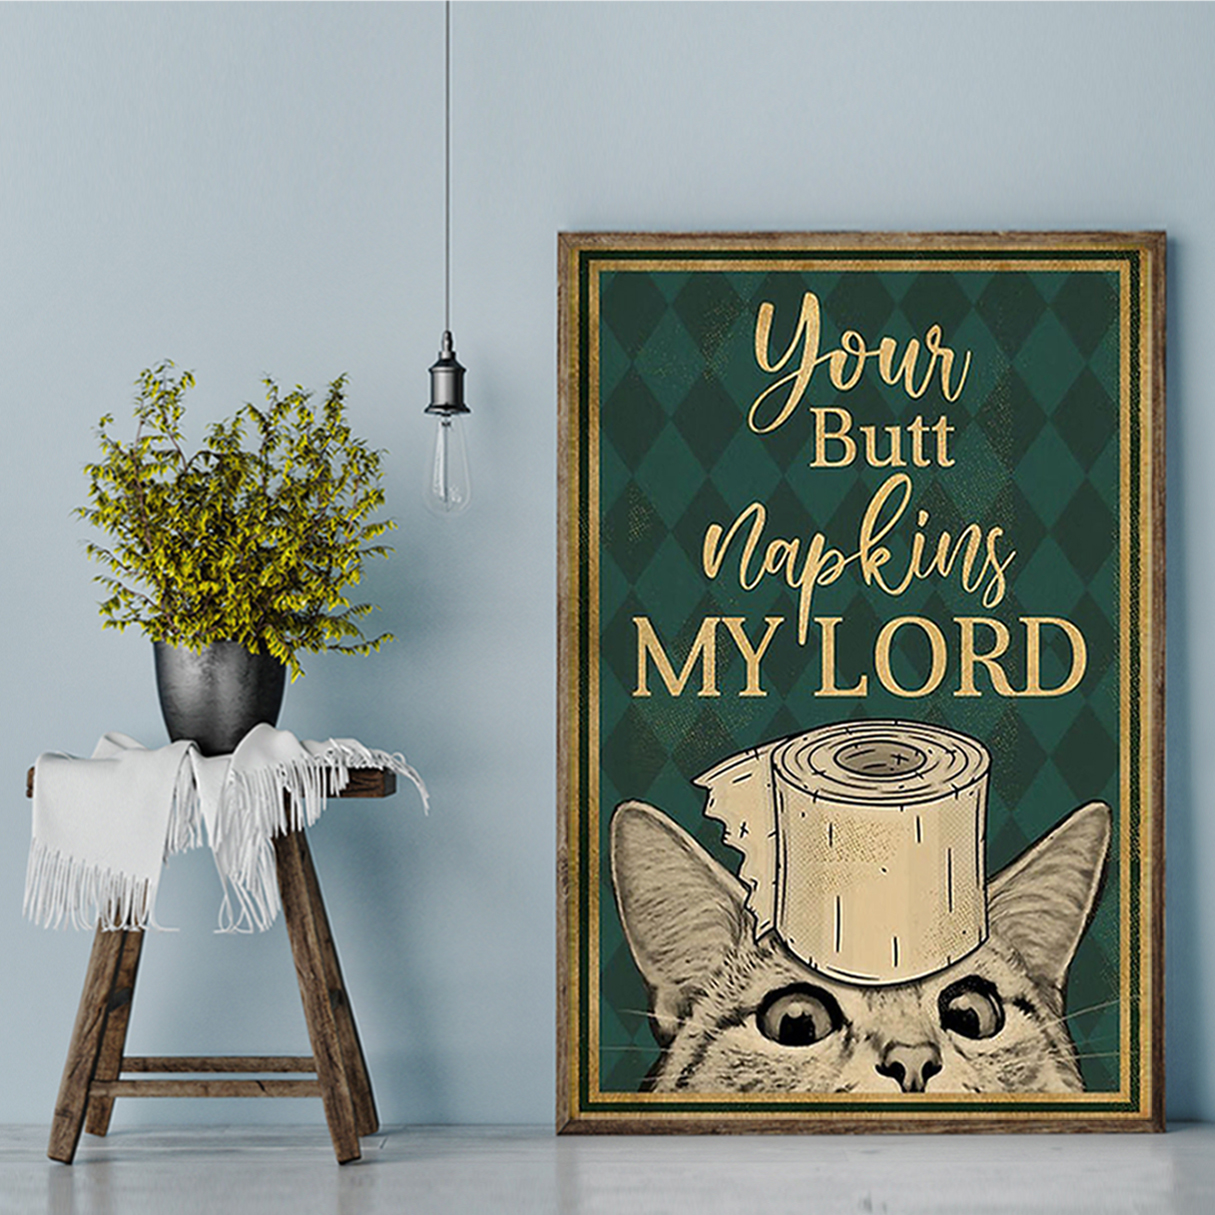 Cat your butt napkins my lord poster A2